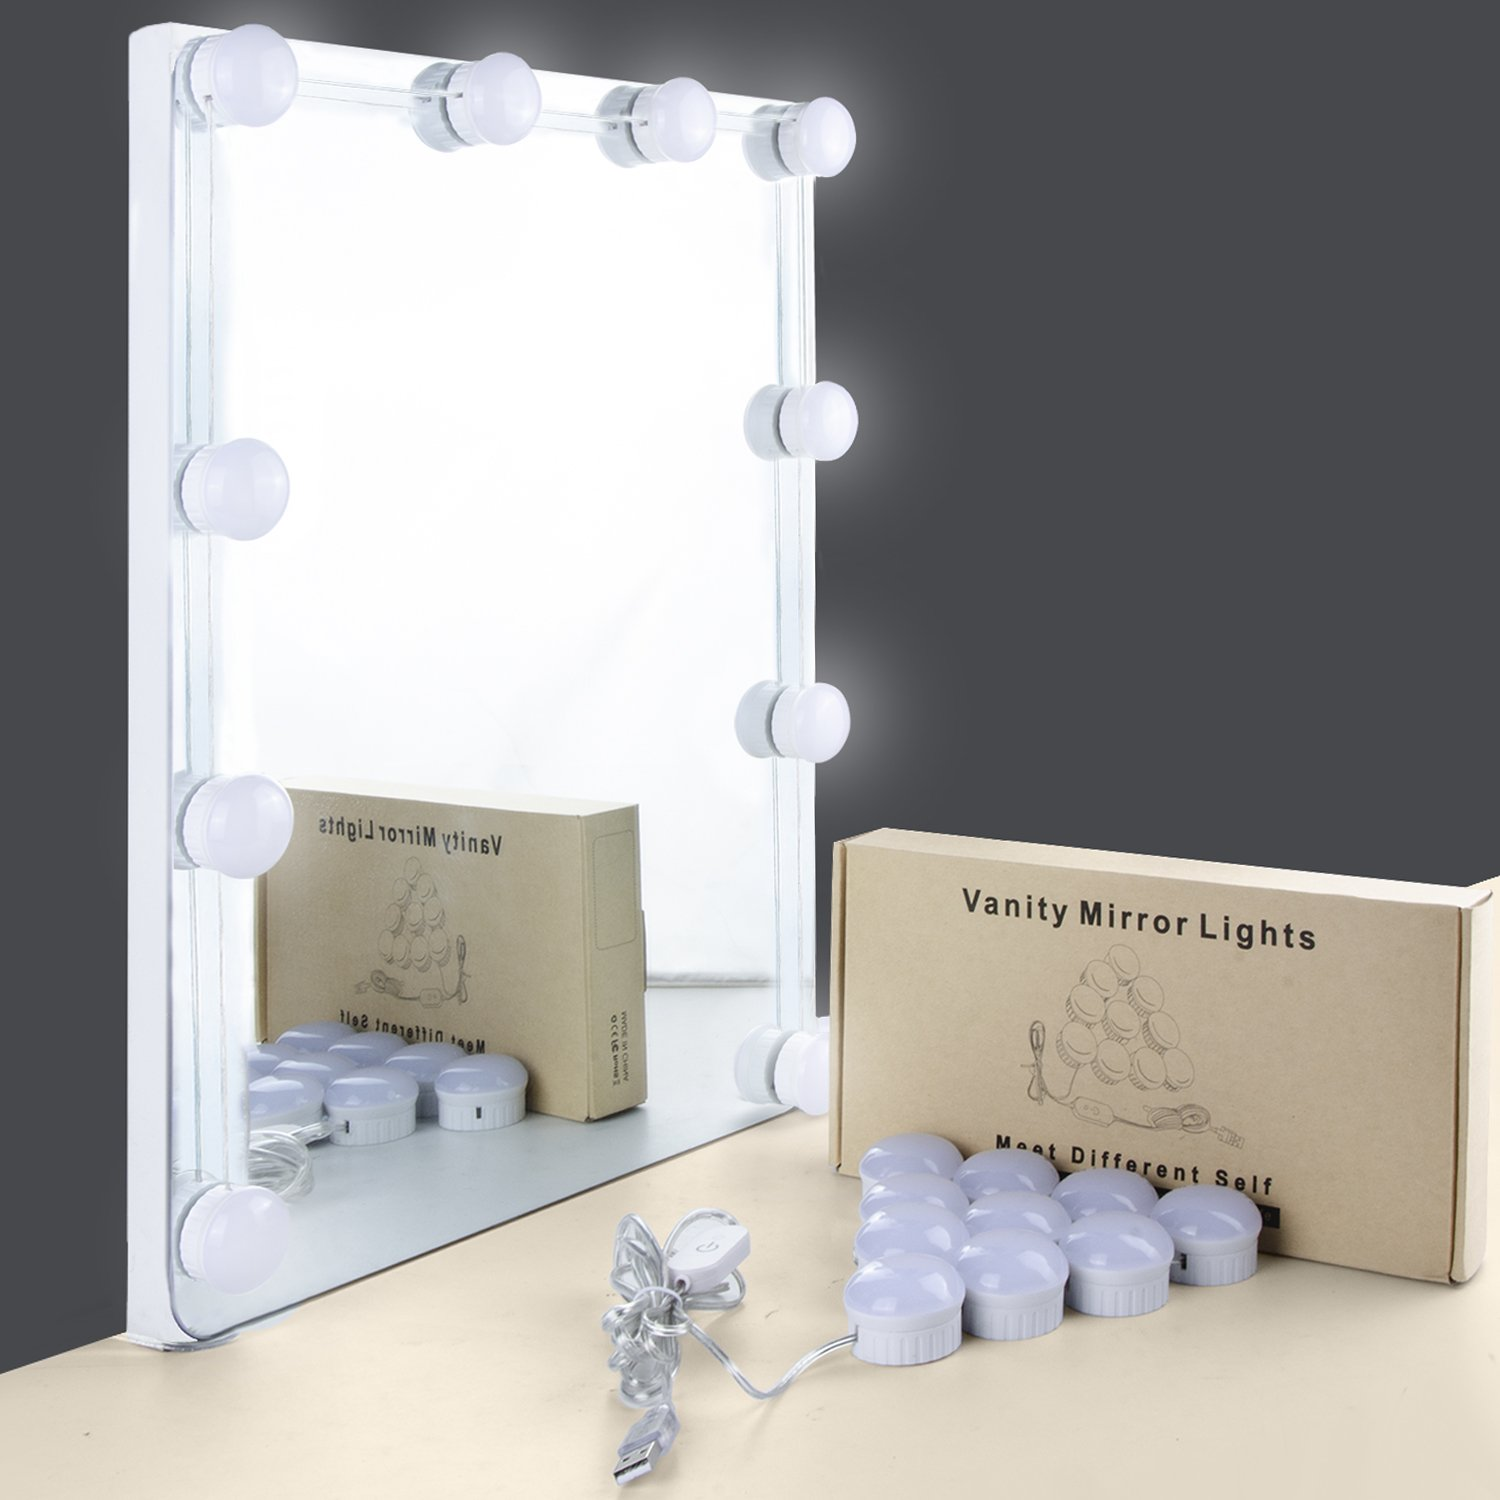 Mirror Lights, UNIFUN Hollywood Style LED Makeup Mirror Lights with 10 Dimmable Bulbs, USB Powered Flexible Lighting Fixture 7000K for Bathroom, Makeup Dressing Table (Mirror Not Include) (Touch)